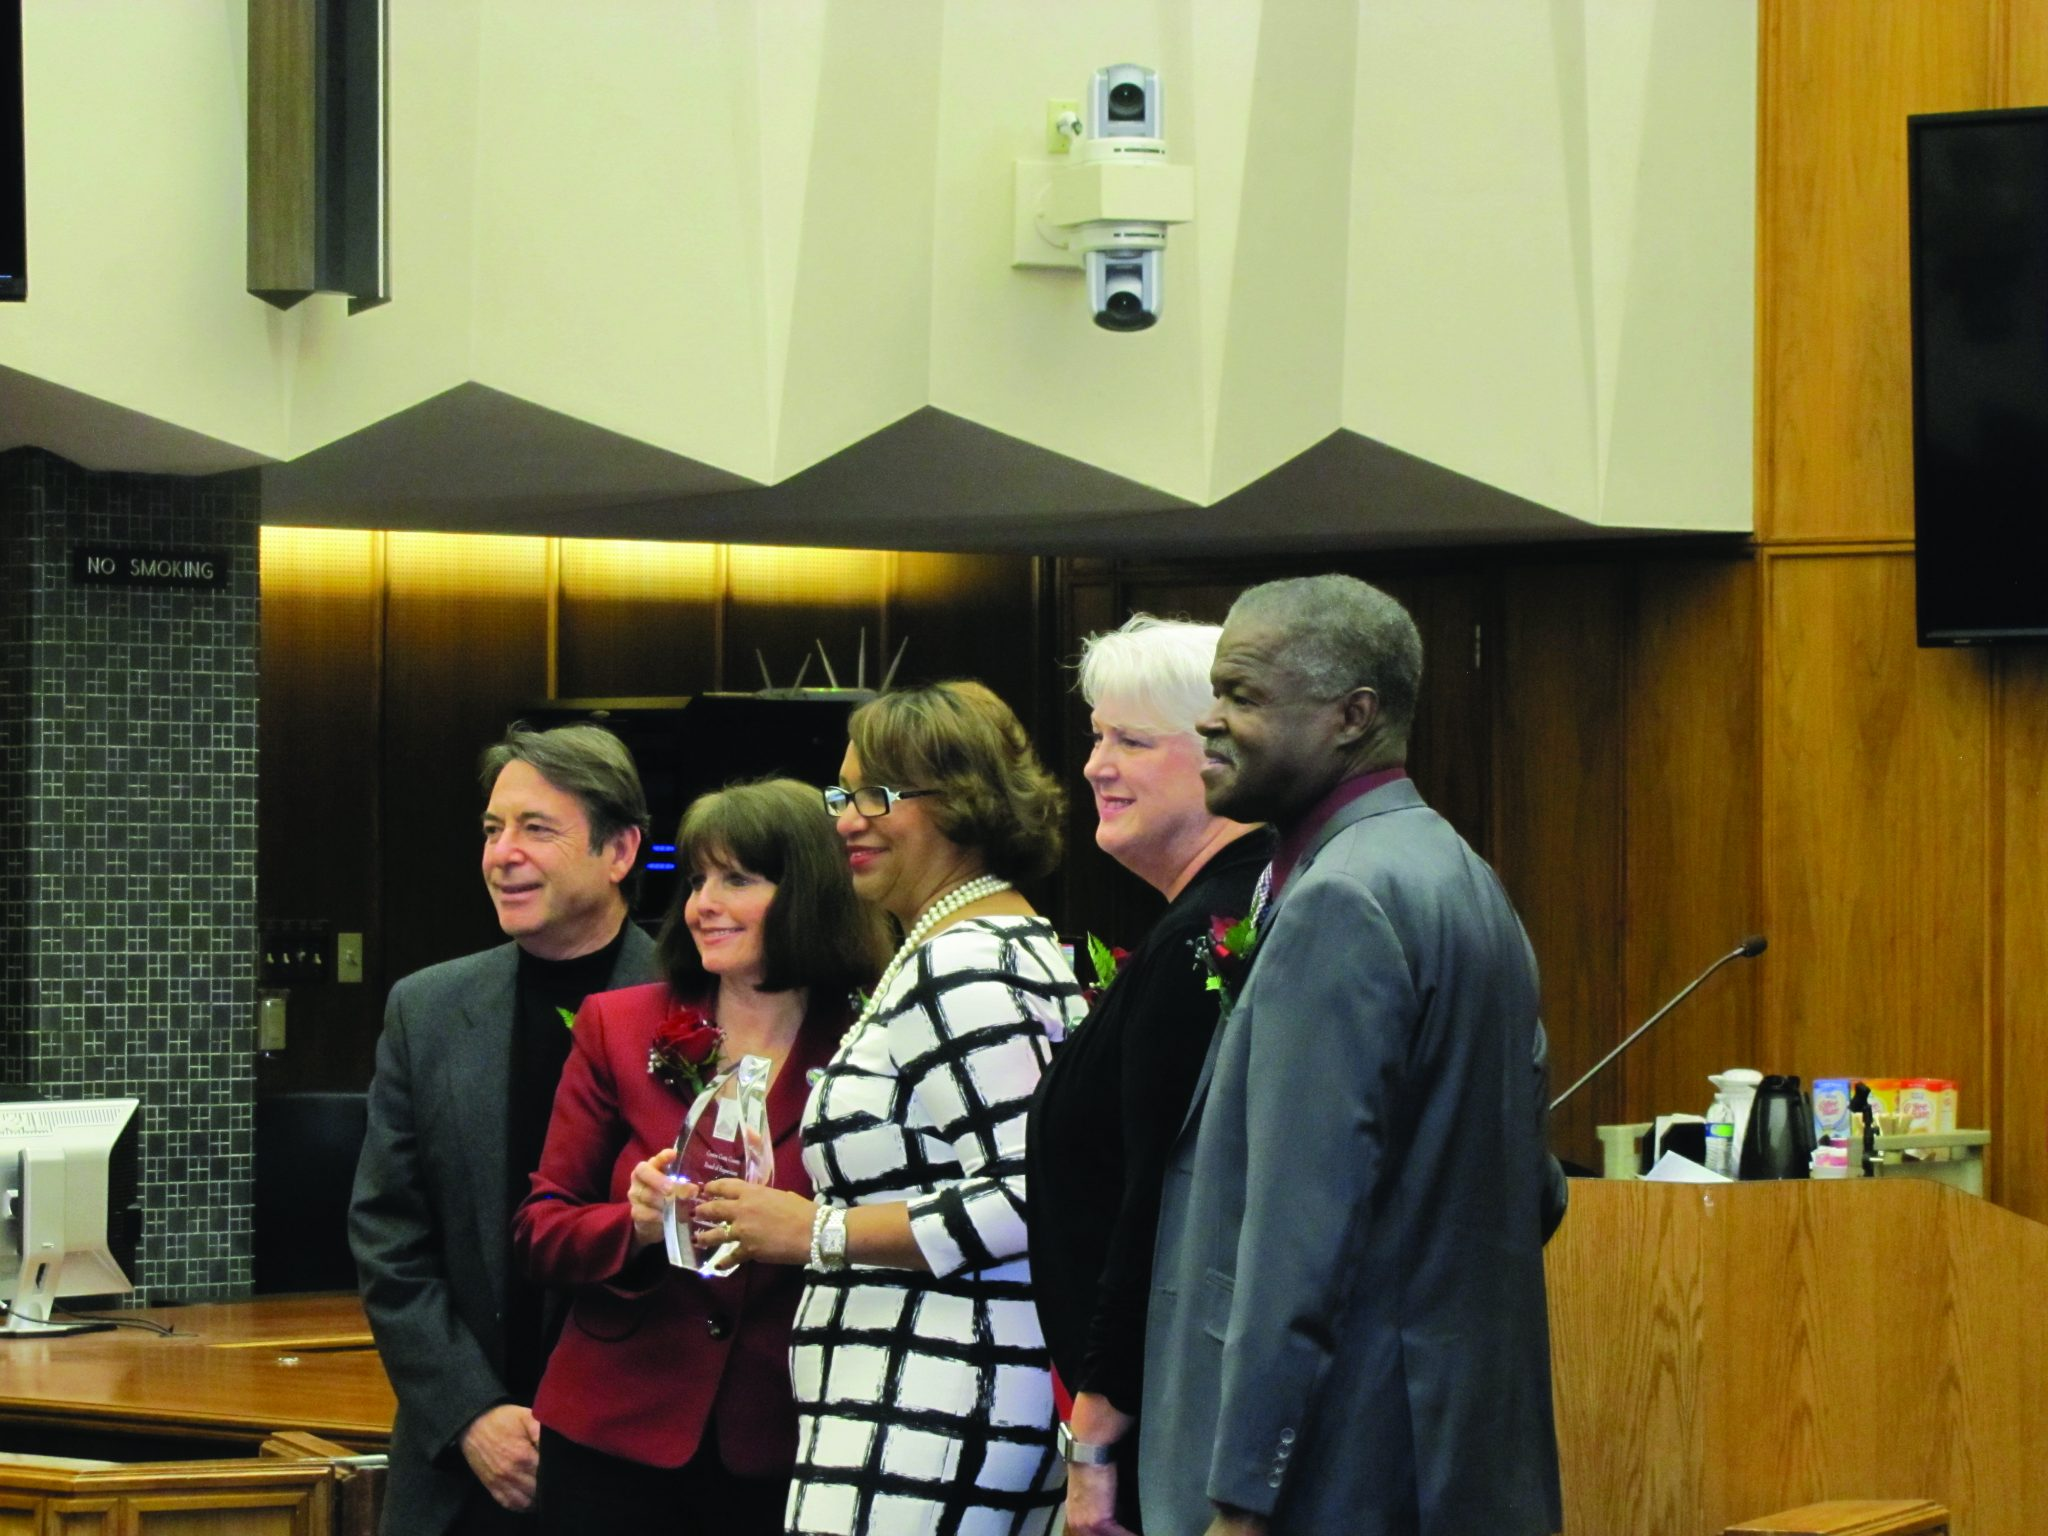 Terri Porter (center) receives the 2016 Humanitarian of the Year Award Tuesday, Jan. 19, during a special ceremony honoring the memory of Dr. Martin Luther King Jr. in the chambers of the Contra Costa County Board of Supervisors. From left: Supervisor John Gioia (District 1), Supervisor Candace Andersen (District 2), Porter, Supervisor Karen Mitchoff (District 4), and Supervisor Federal Glover (District 5, representing Martinez). Not pictured is District 3 Supervisor Mary Piepho. (HANNAH HATCH / Martinez Tribune)